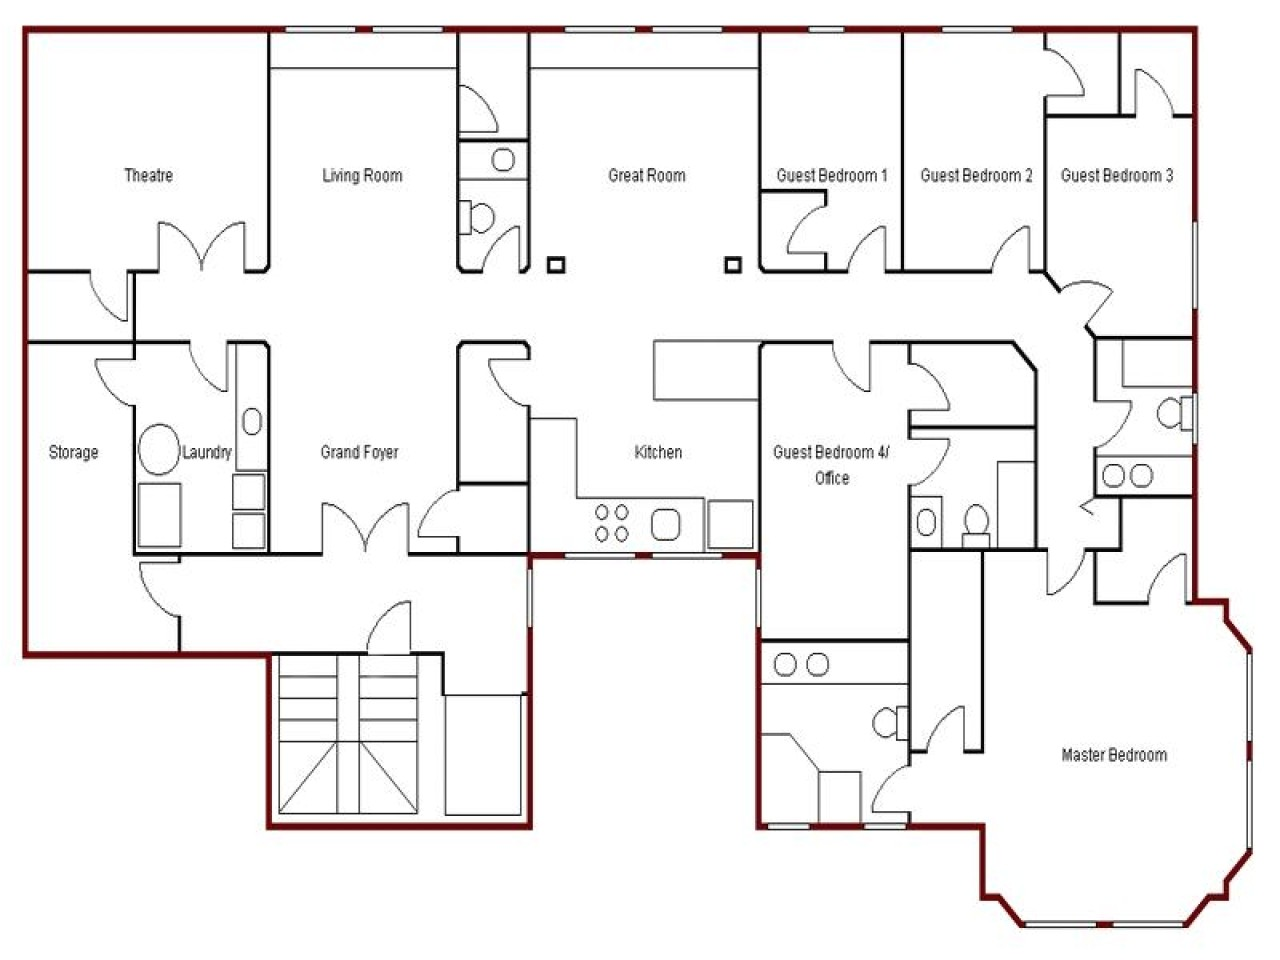 bd8febfed31a552b create simple floor plan simple house drawing plan